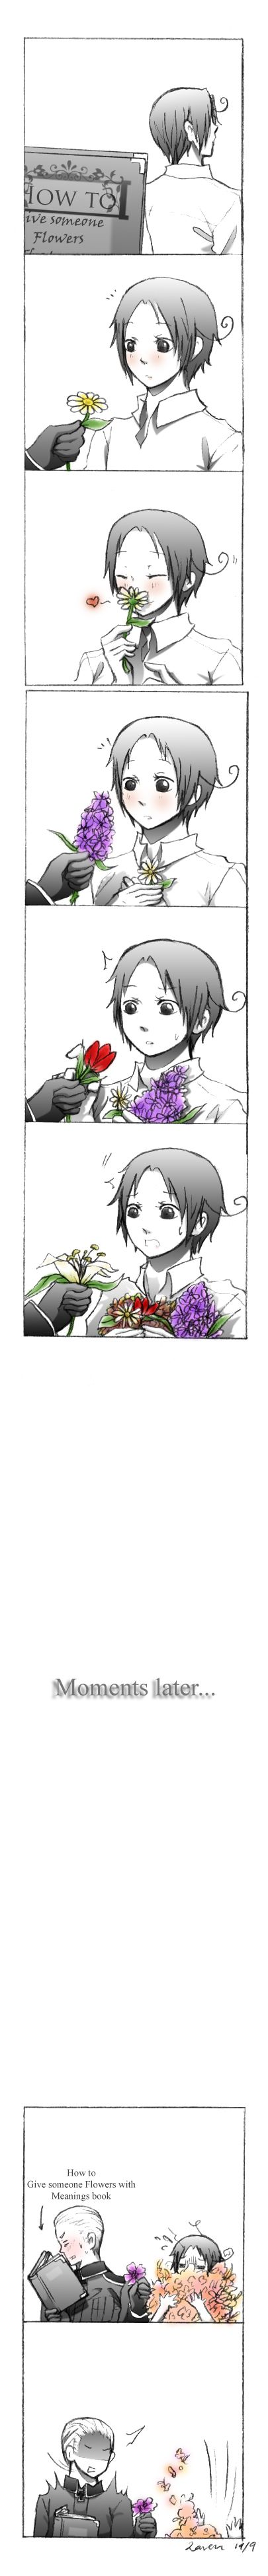 SO CUTE! ♡ - APH: How to give flowers by RavenWolf-1827.deviantart.com on @deviantART